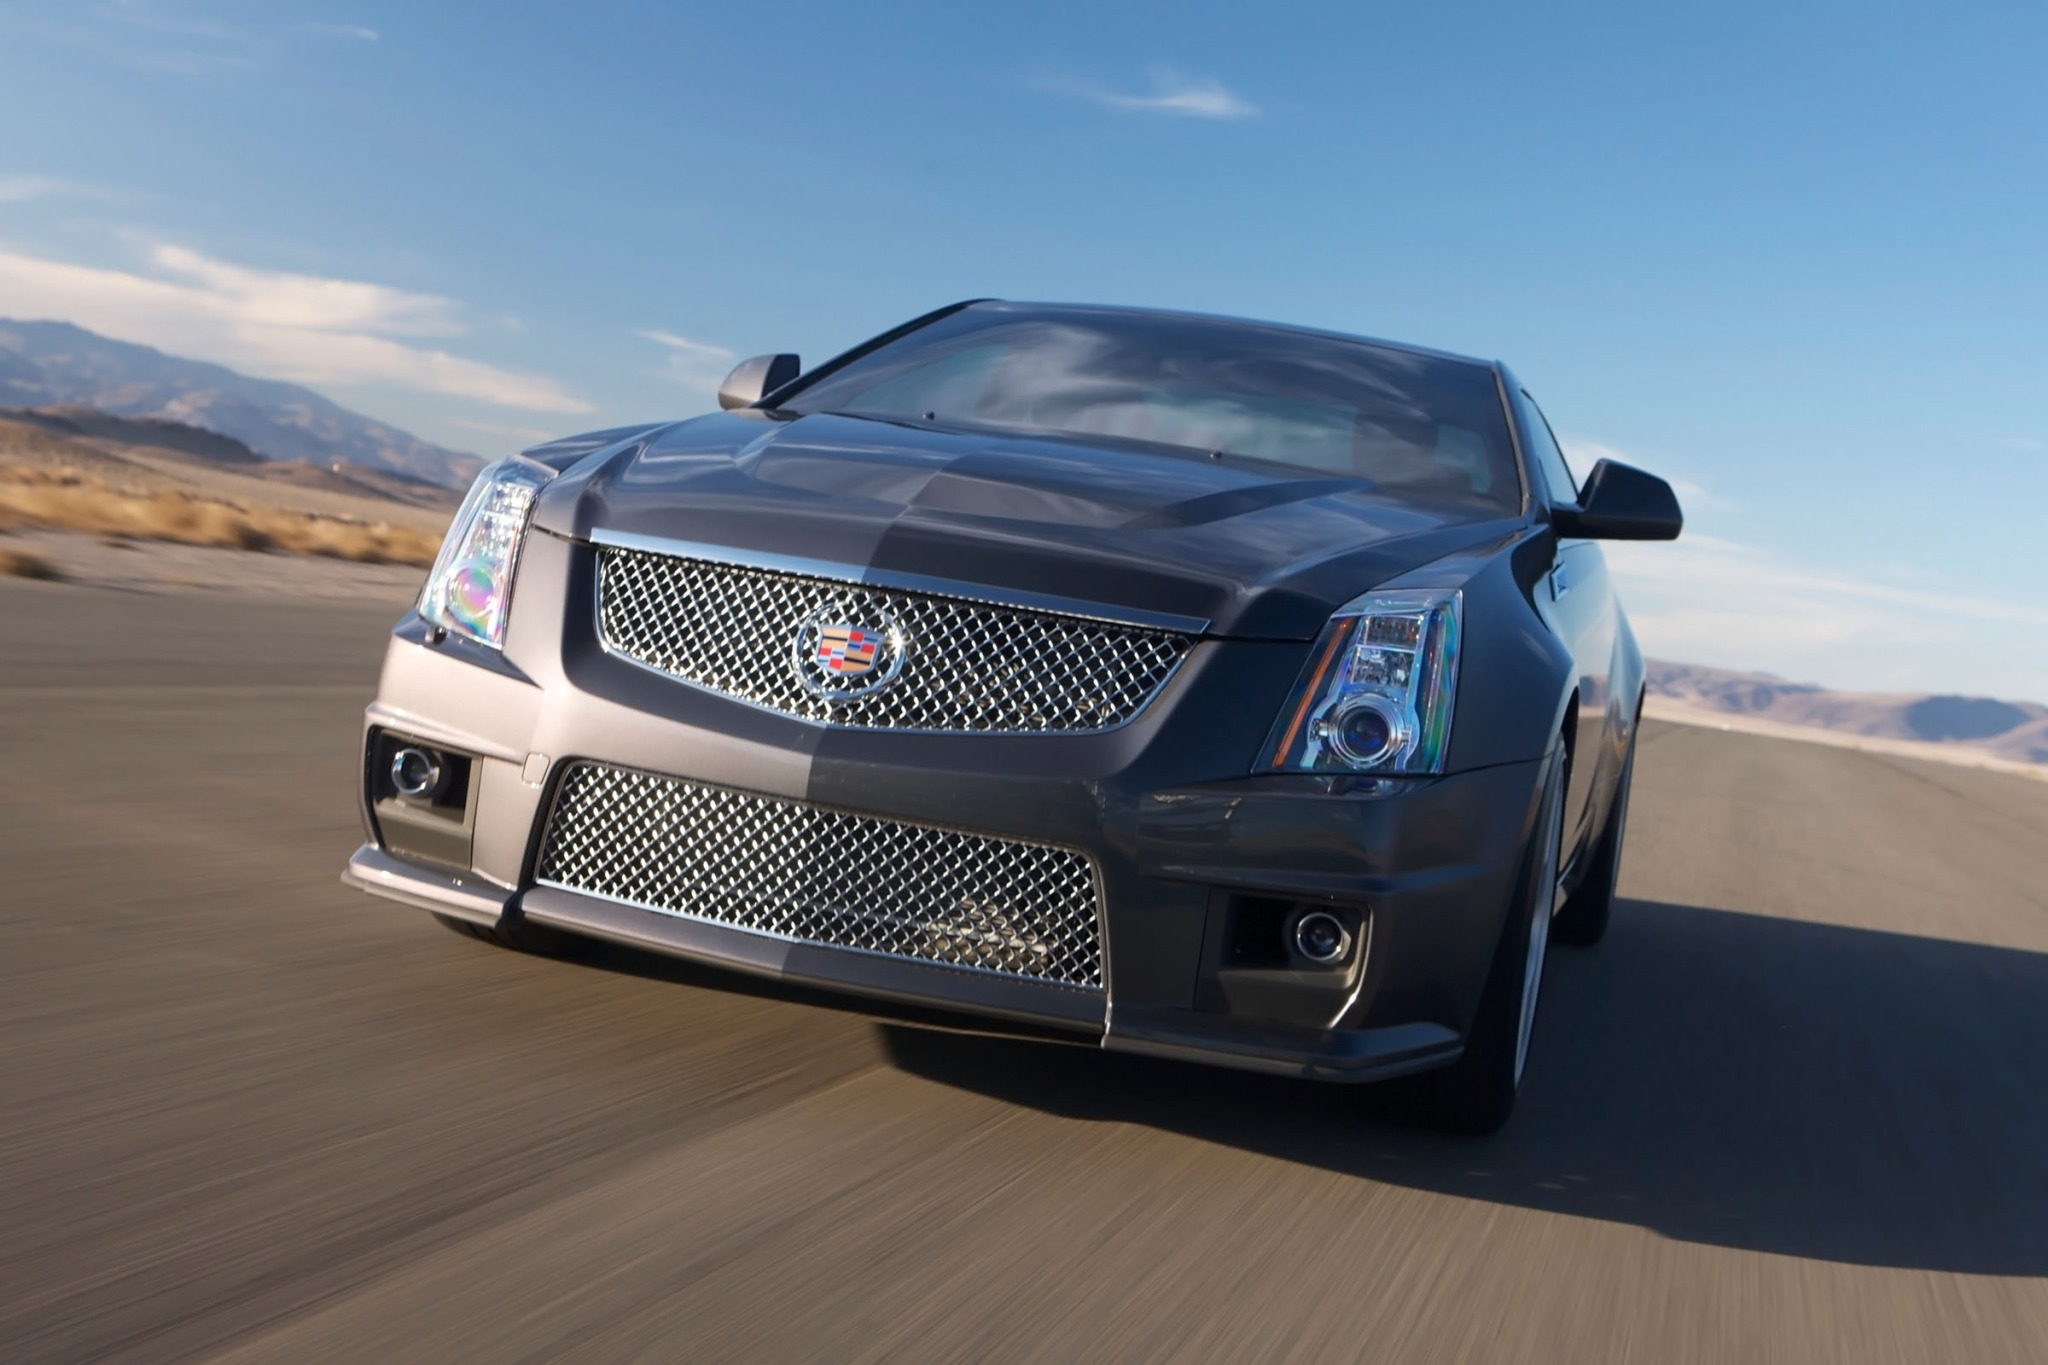 2012 Cadillac CTS-V Coupe exterior #6